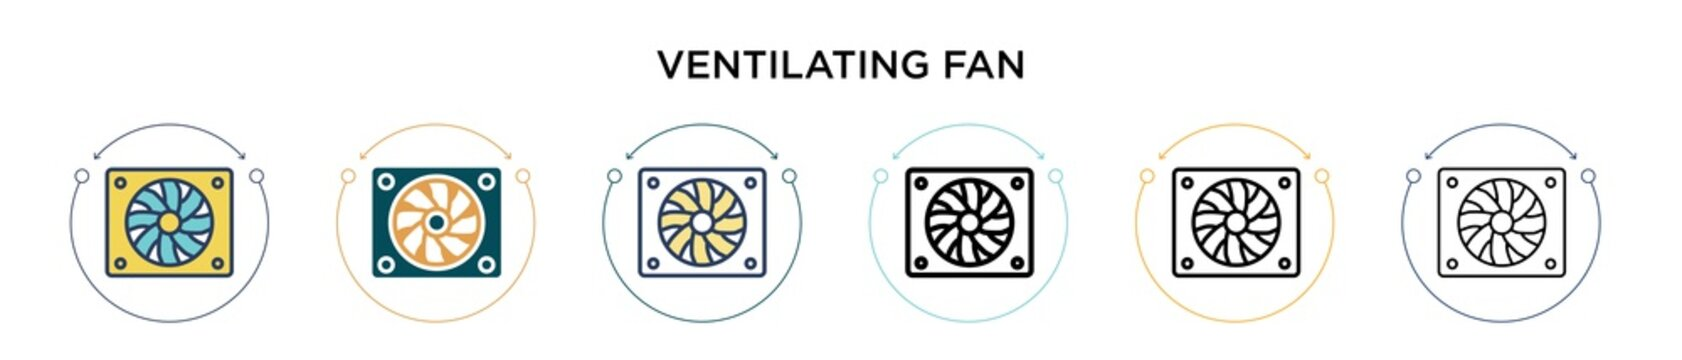 Ventilating fan icon in filled, thin line, outline and stroke style. Vector illustration of two colored and black ventilating fan vector icons designs can be used for mobile, ui, web